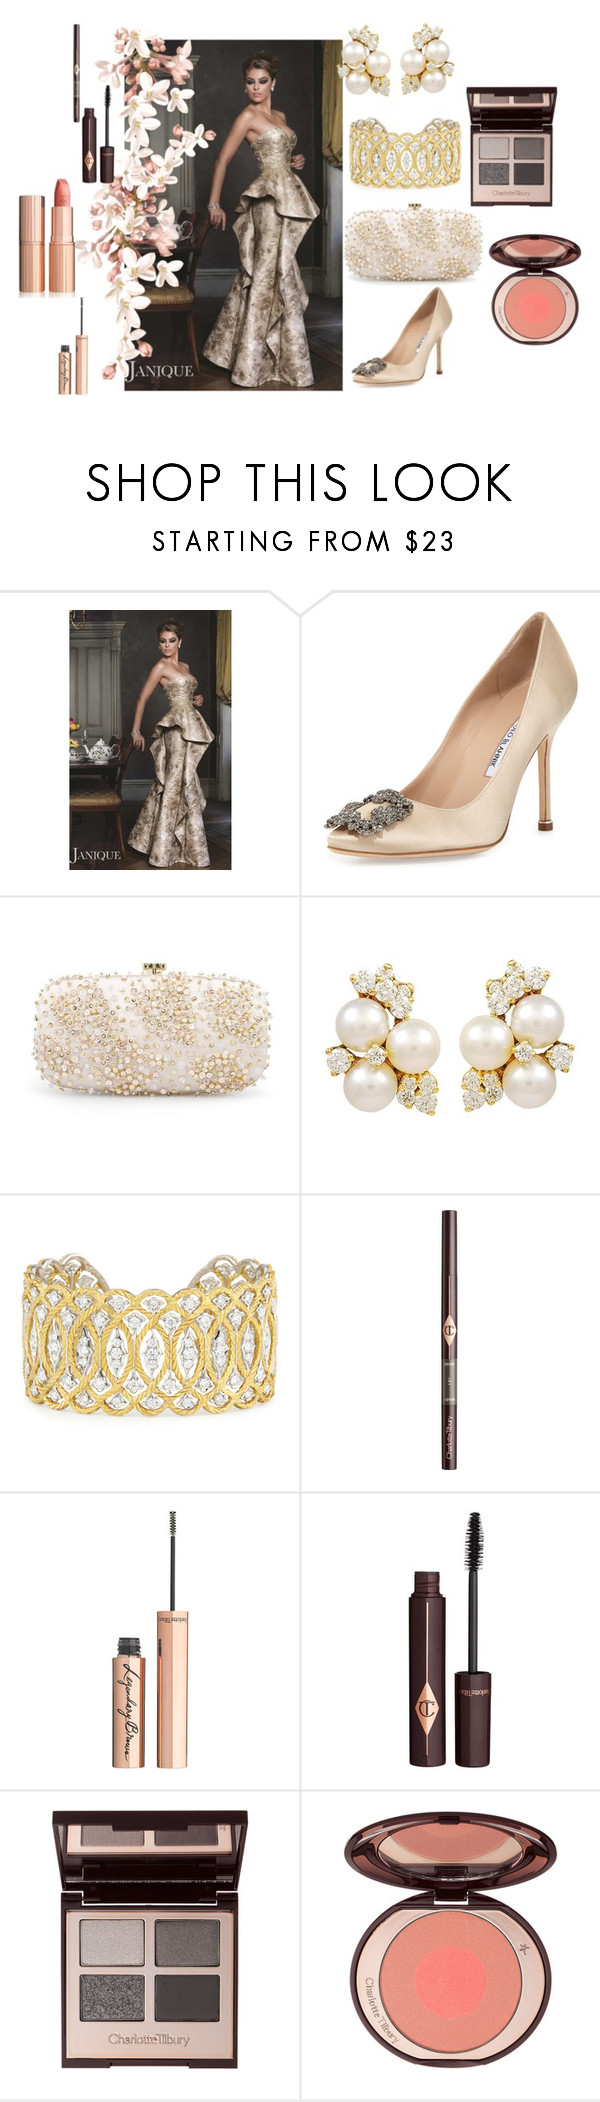 """""""Untitled #443"""" by vintagelady52 ❤ liked on Polyvore featuring Janique, Manolo Blahnik, Oscar de la Renta, Buccellati and Charlotte Tilbury"""